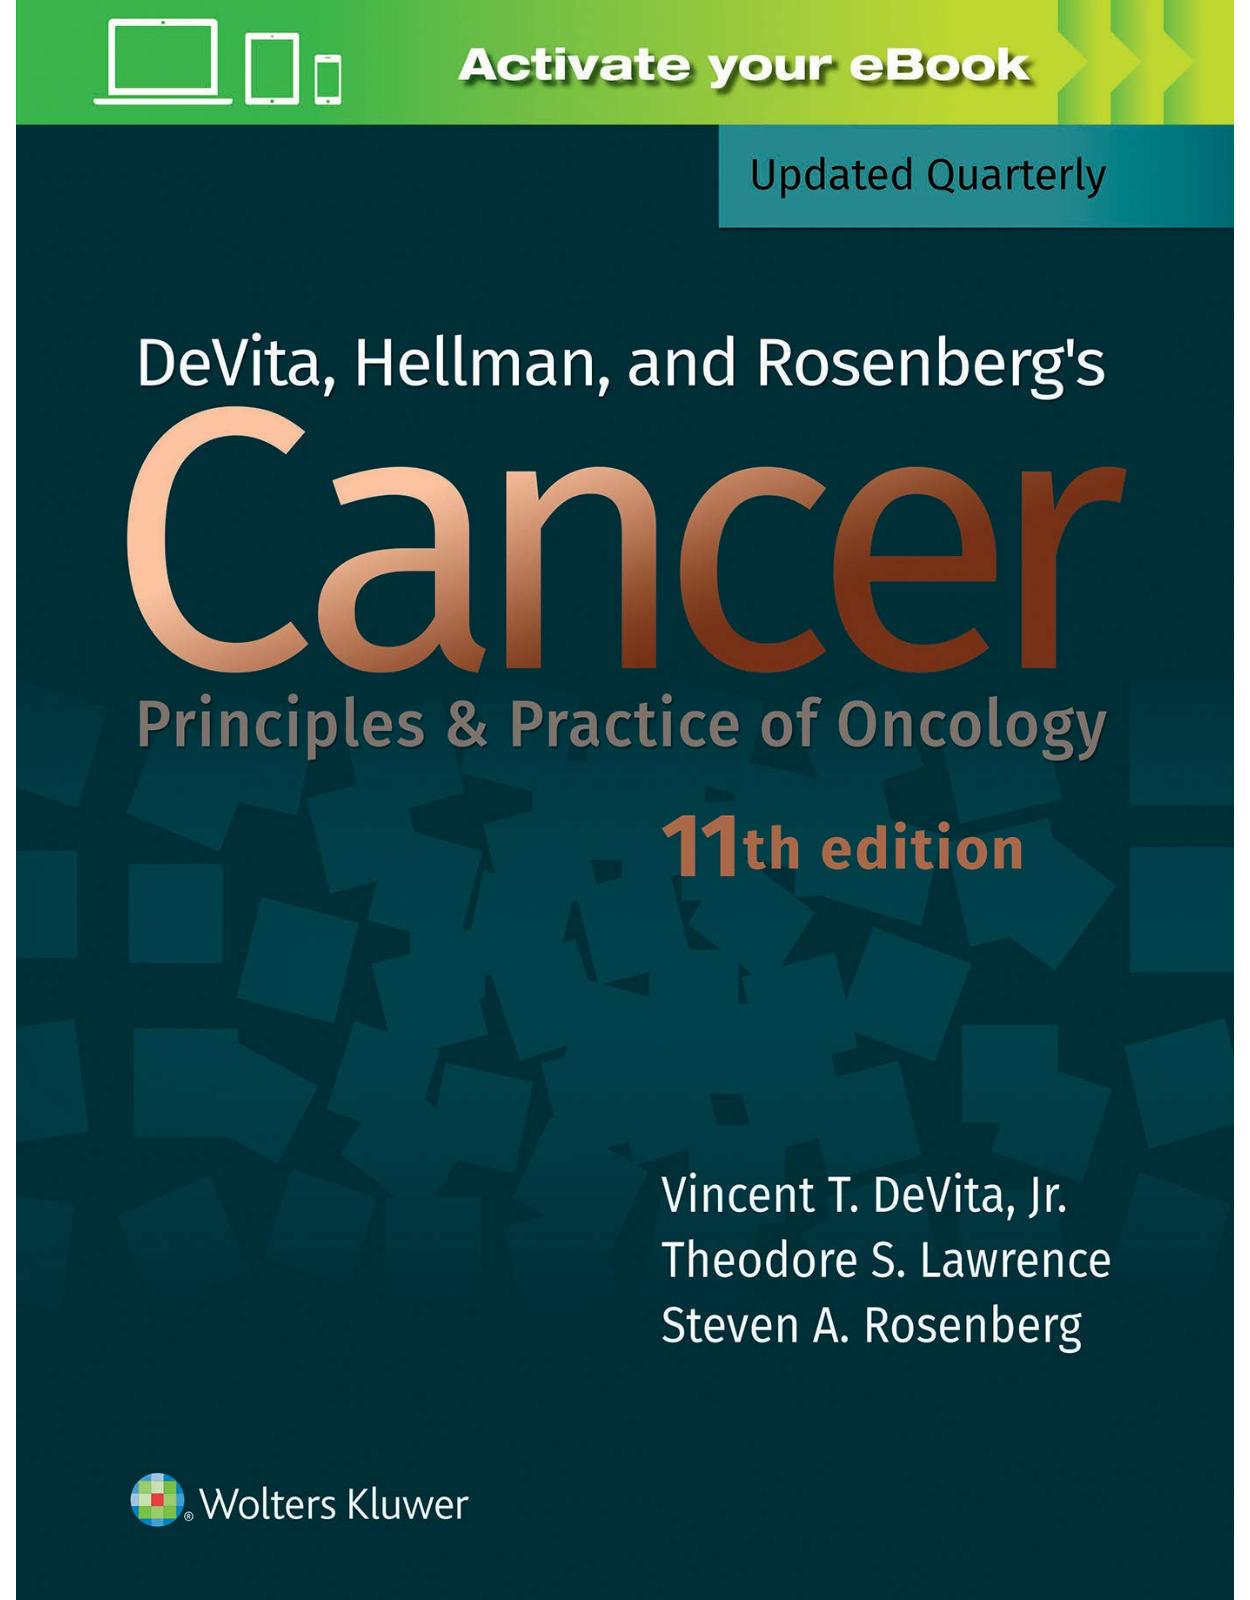 DeVita, Hellman, and Rosenberg's Cancer: Principles & Practice of Oncology